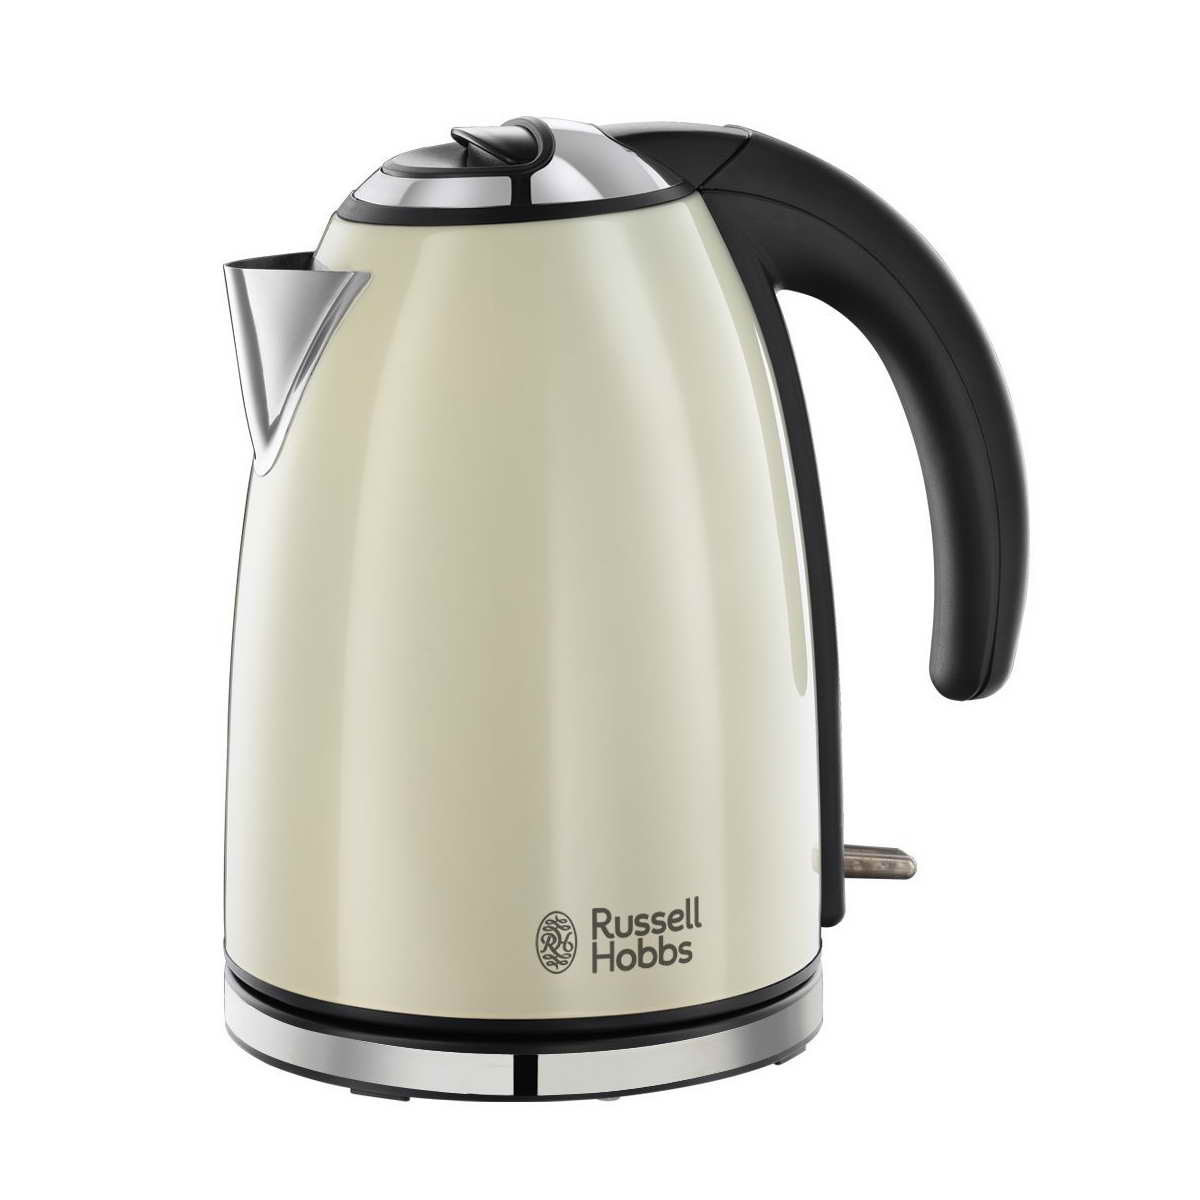 russell hobbs 23604 henley rapid boil electric kettle cream around the clock offers. Black Bedroom Furniture Sets. Home Design Ideas